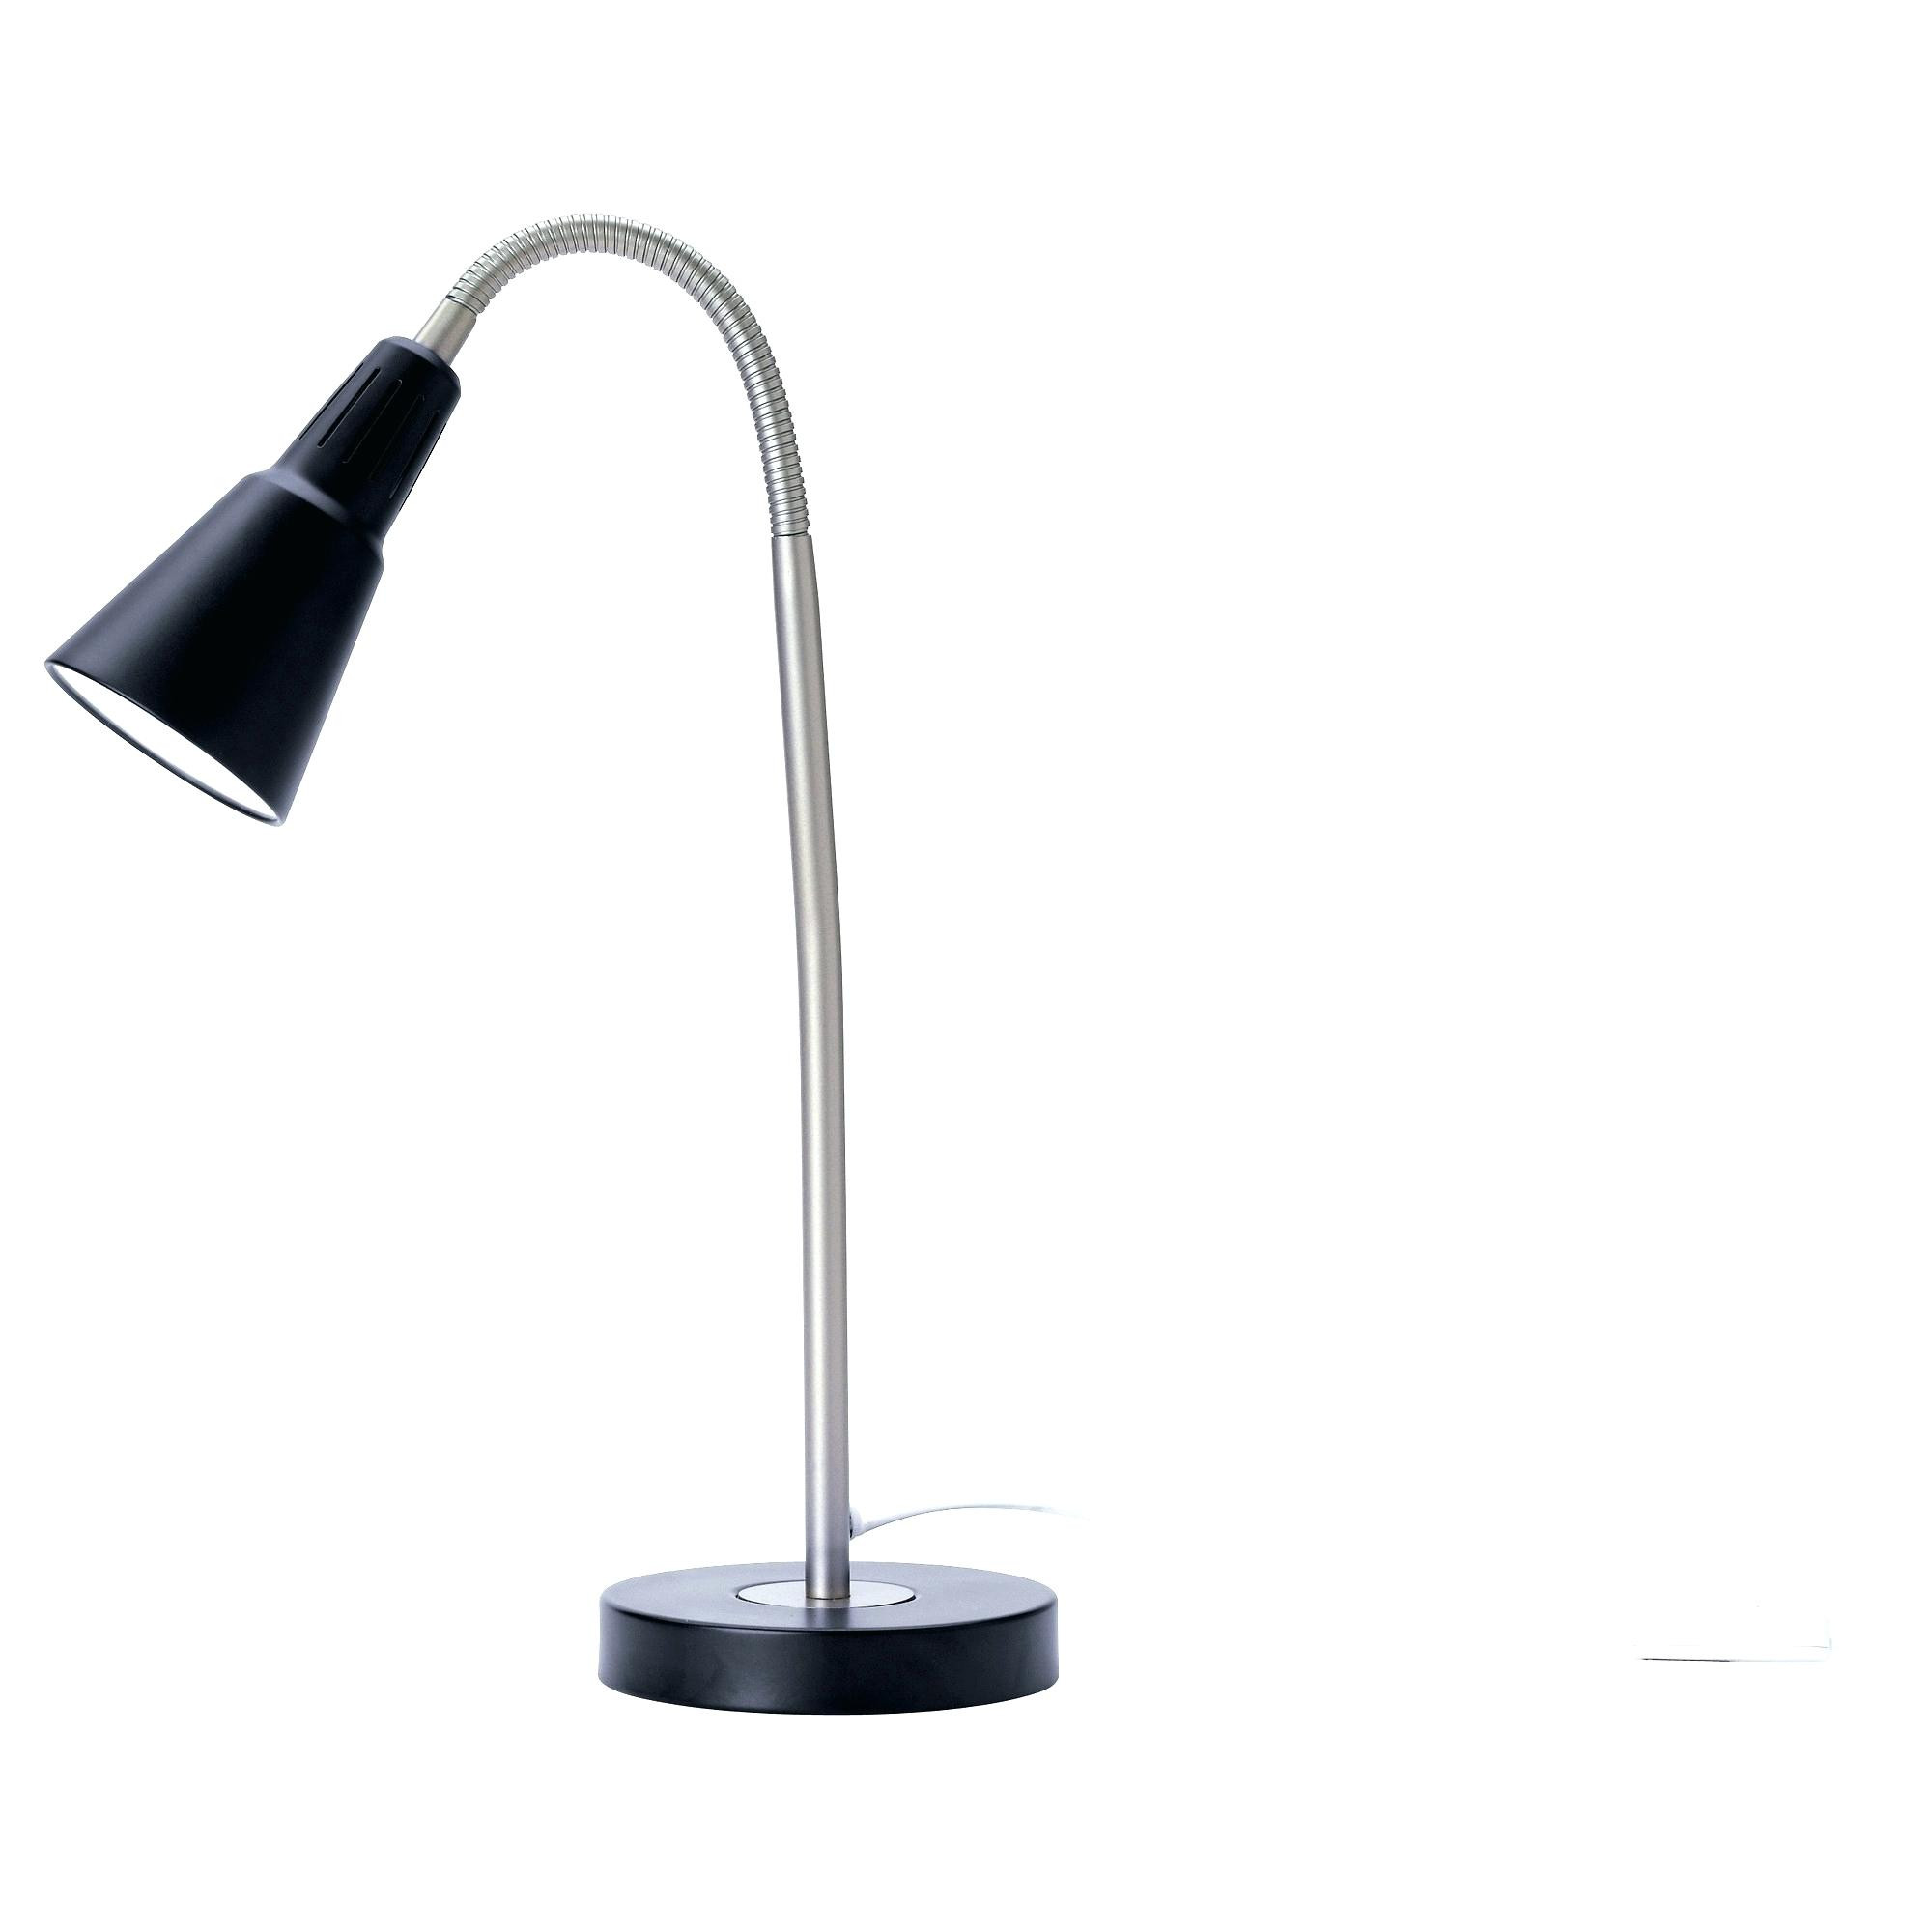 Best ideas about Office Depot Desk Lamps . Save or Pin fice Depot Desk Lamps fice Depot Desk Lamps Now.